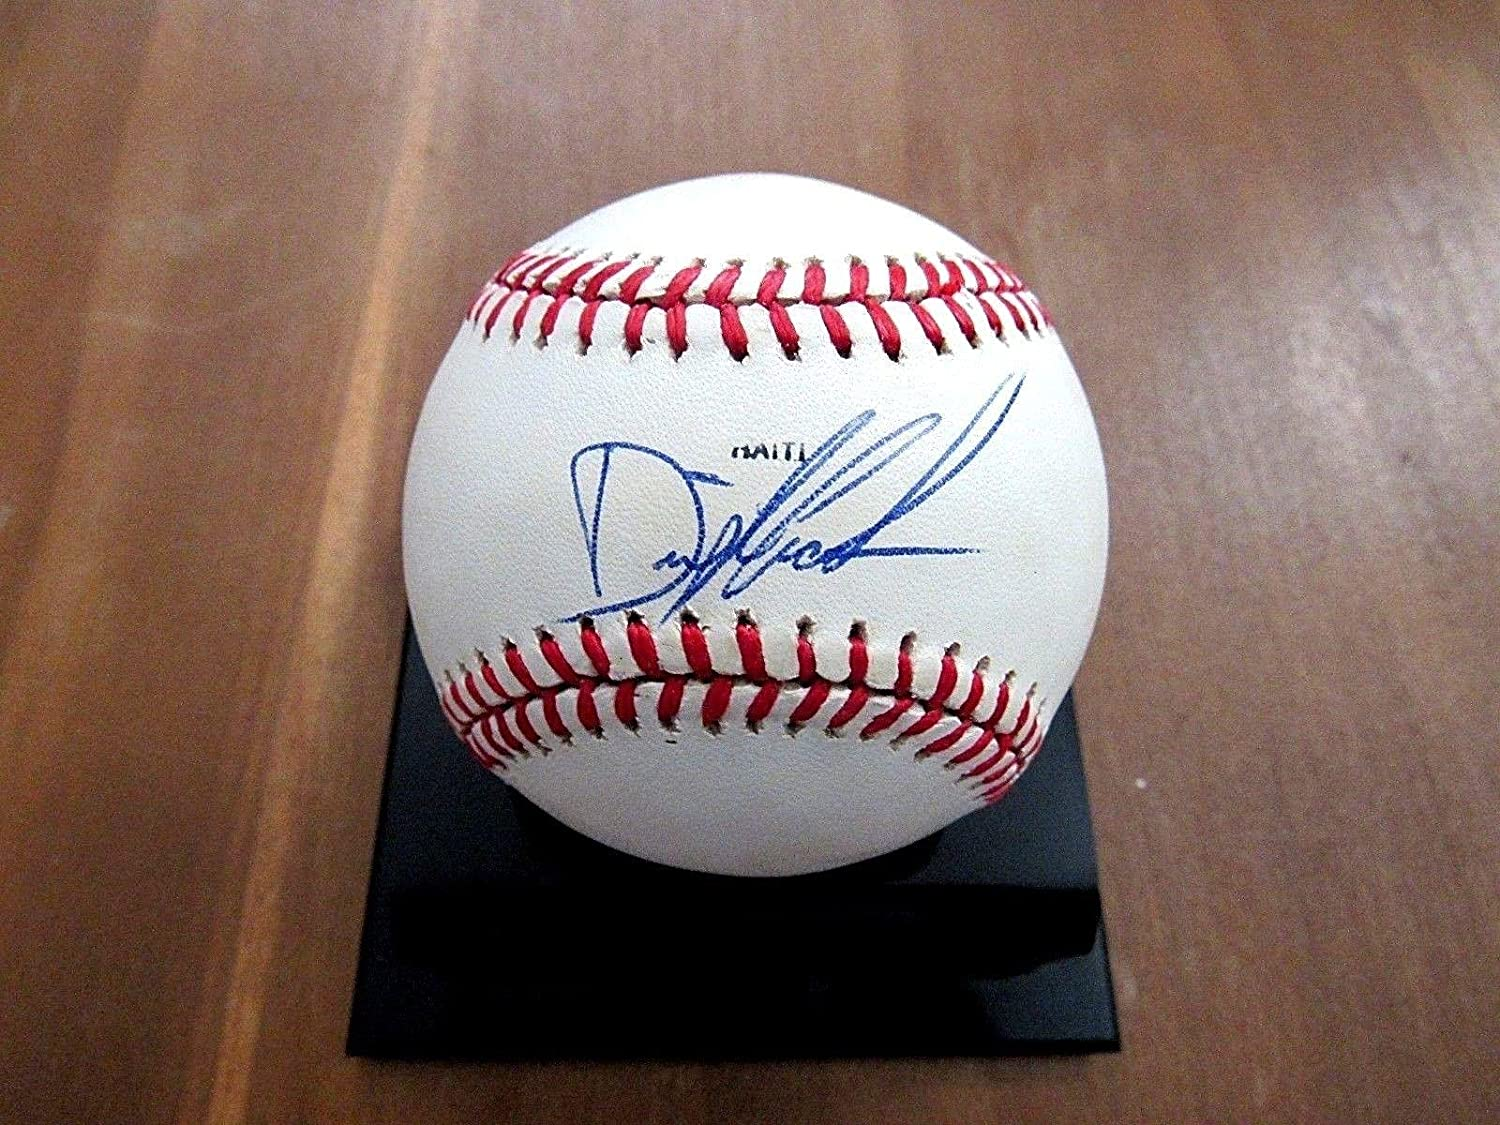 Dwight Gooden Signed Baseball  Doc 1985 Roy Cy Yankees VTG 89 A s  JSA Certified  Autographed Baseballs